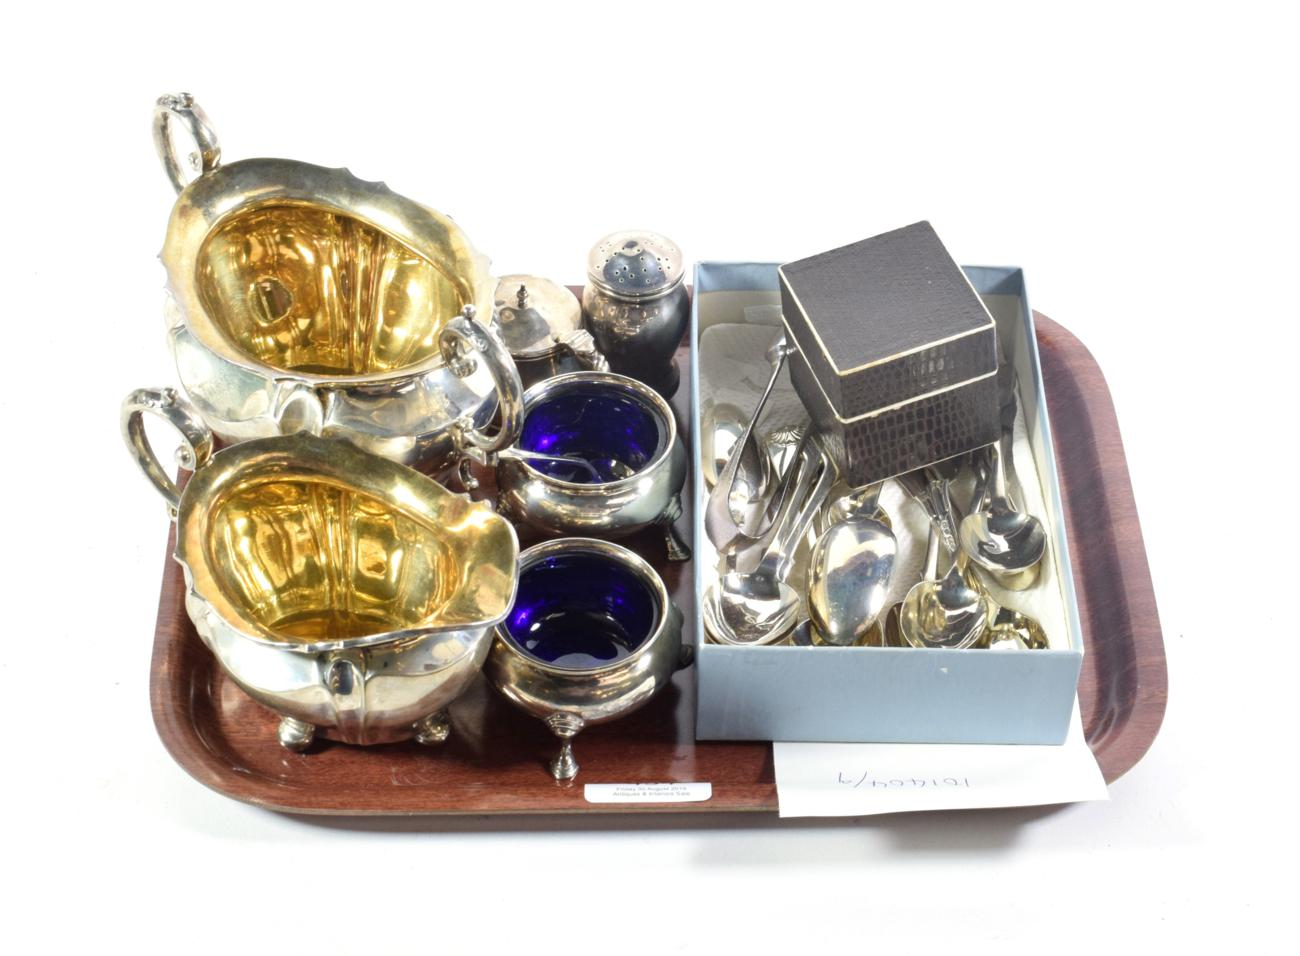 Lot 434 - Silver twin handled sugar bowl and matching cream jug; pair of silver salts and various other silver